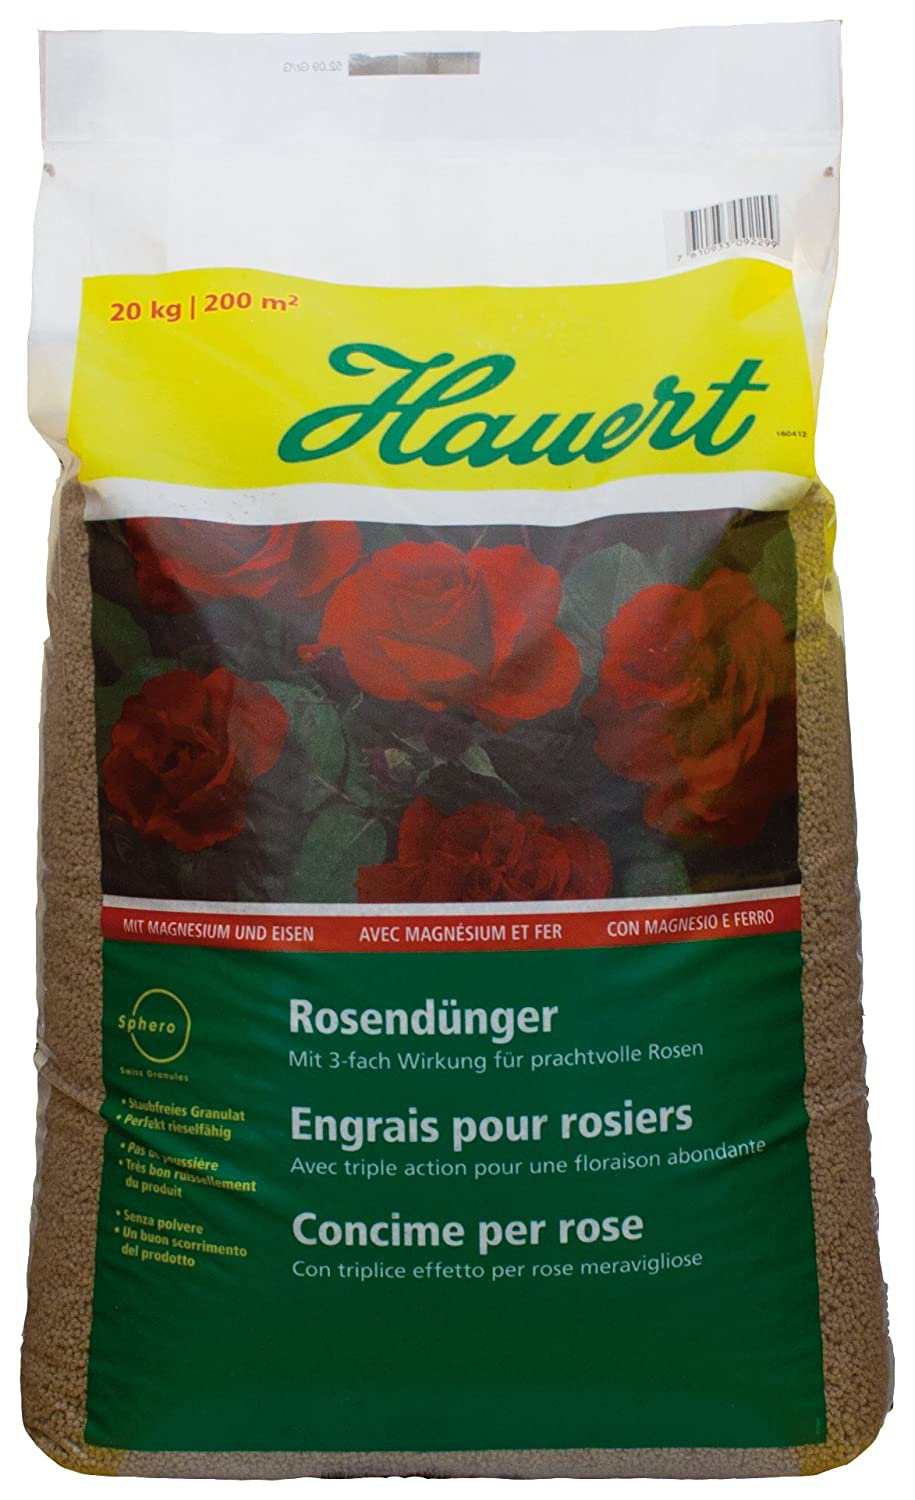 Hauert HBG fertiliser 107320 Rose fertiliser 20 kg Sphero Granulate Hauert HBG Dünger AG